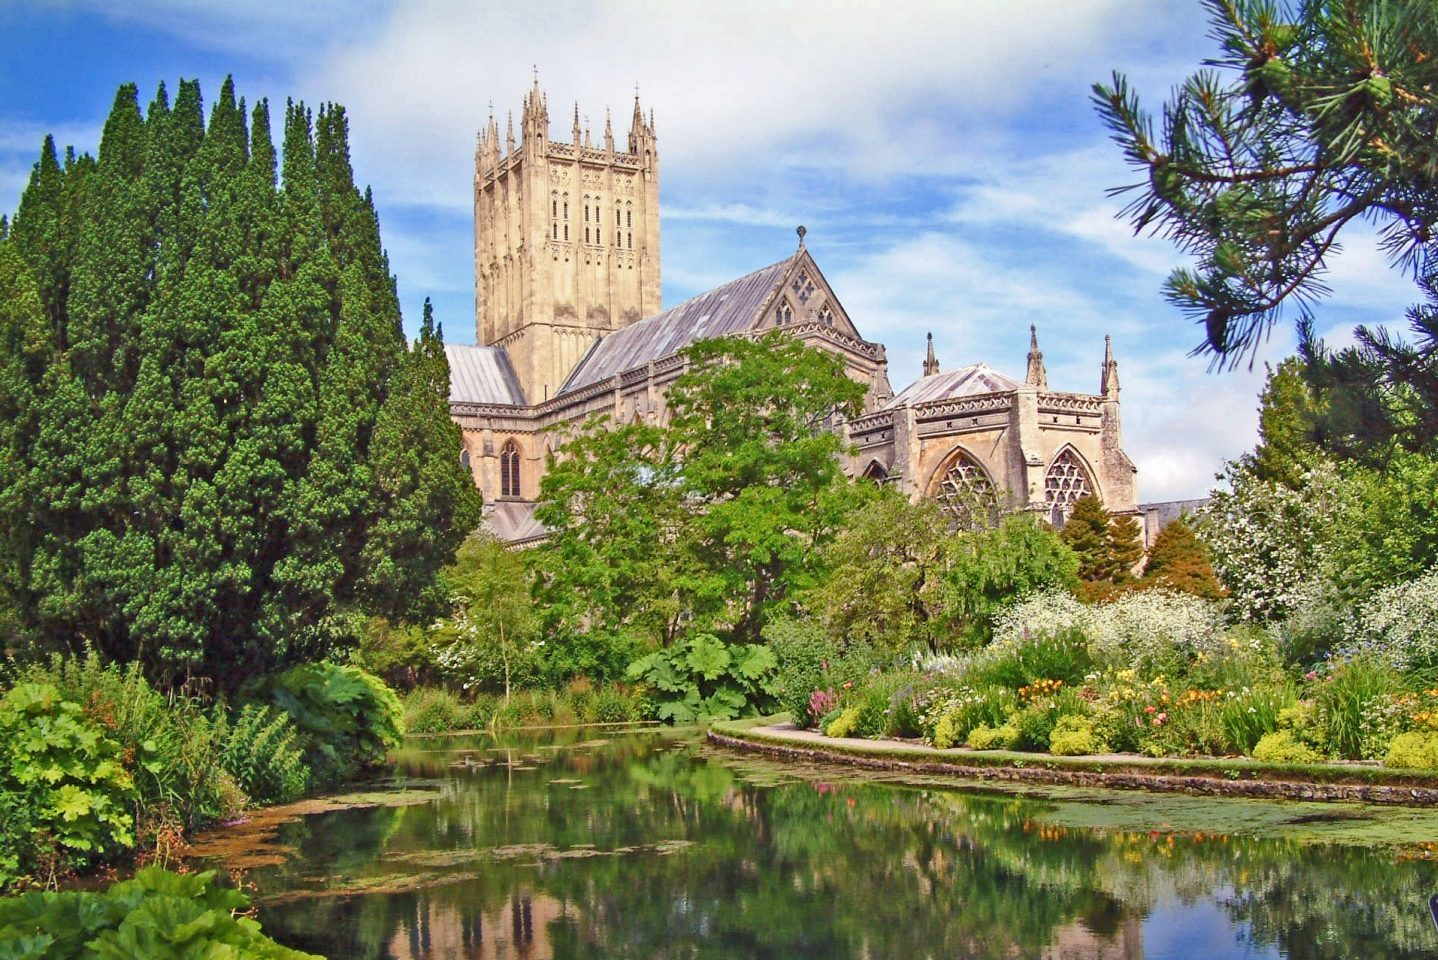 Bishop's Palace, Wells, Somerset - Great Cathedral Reflection (NCN)